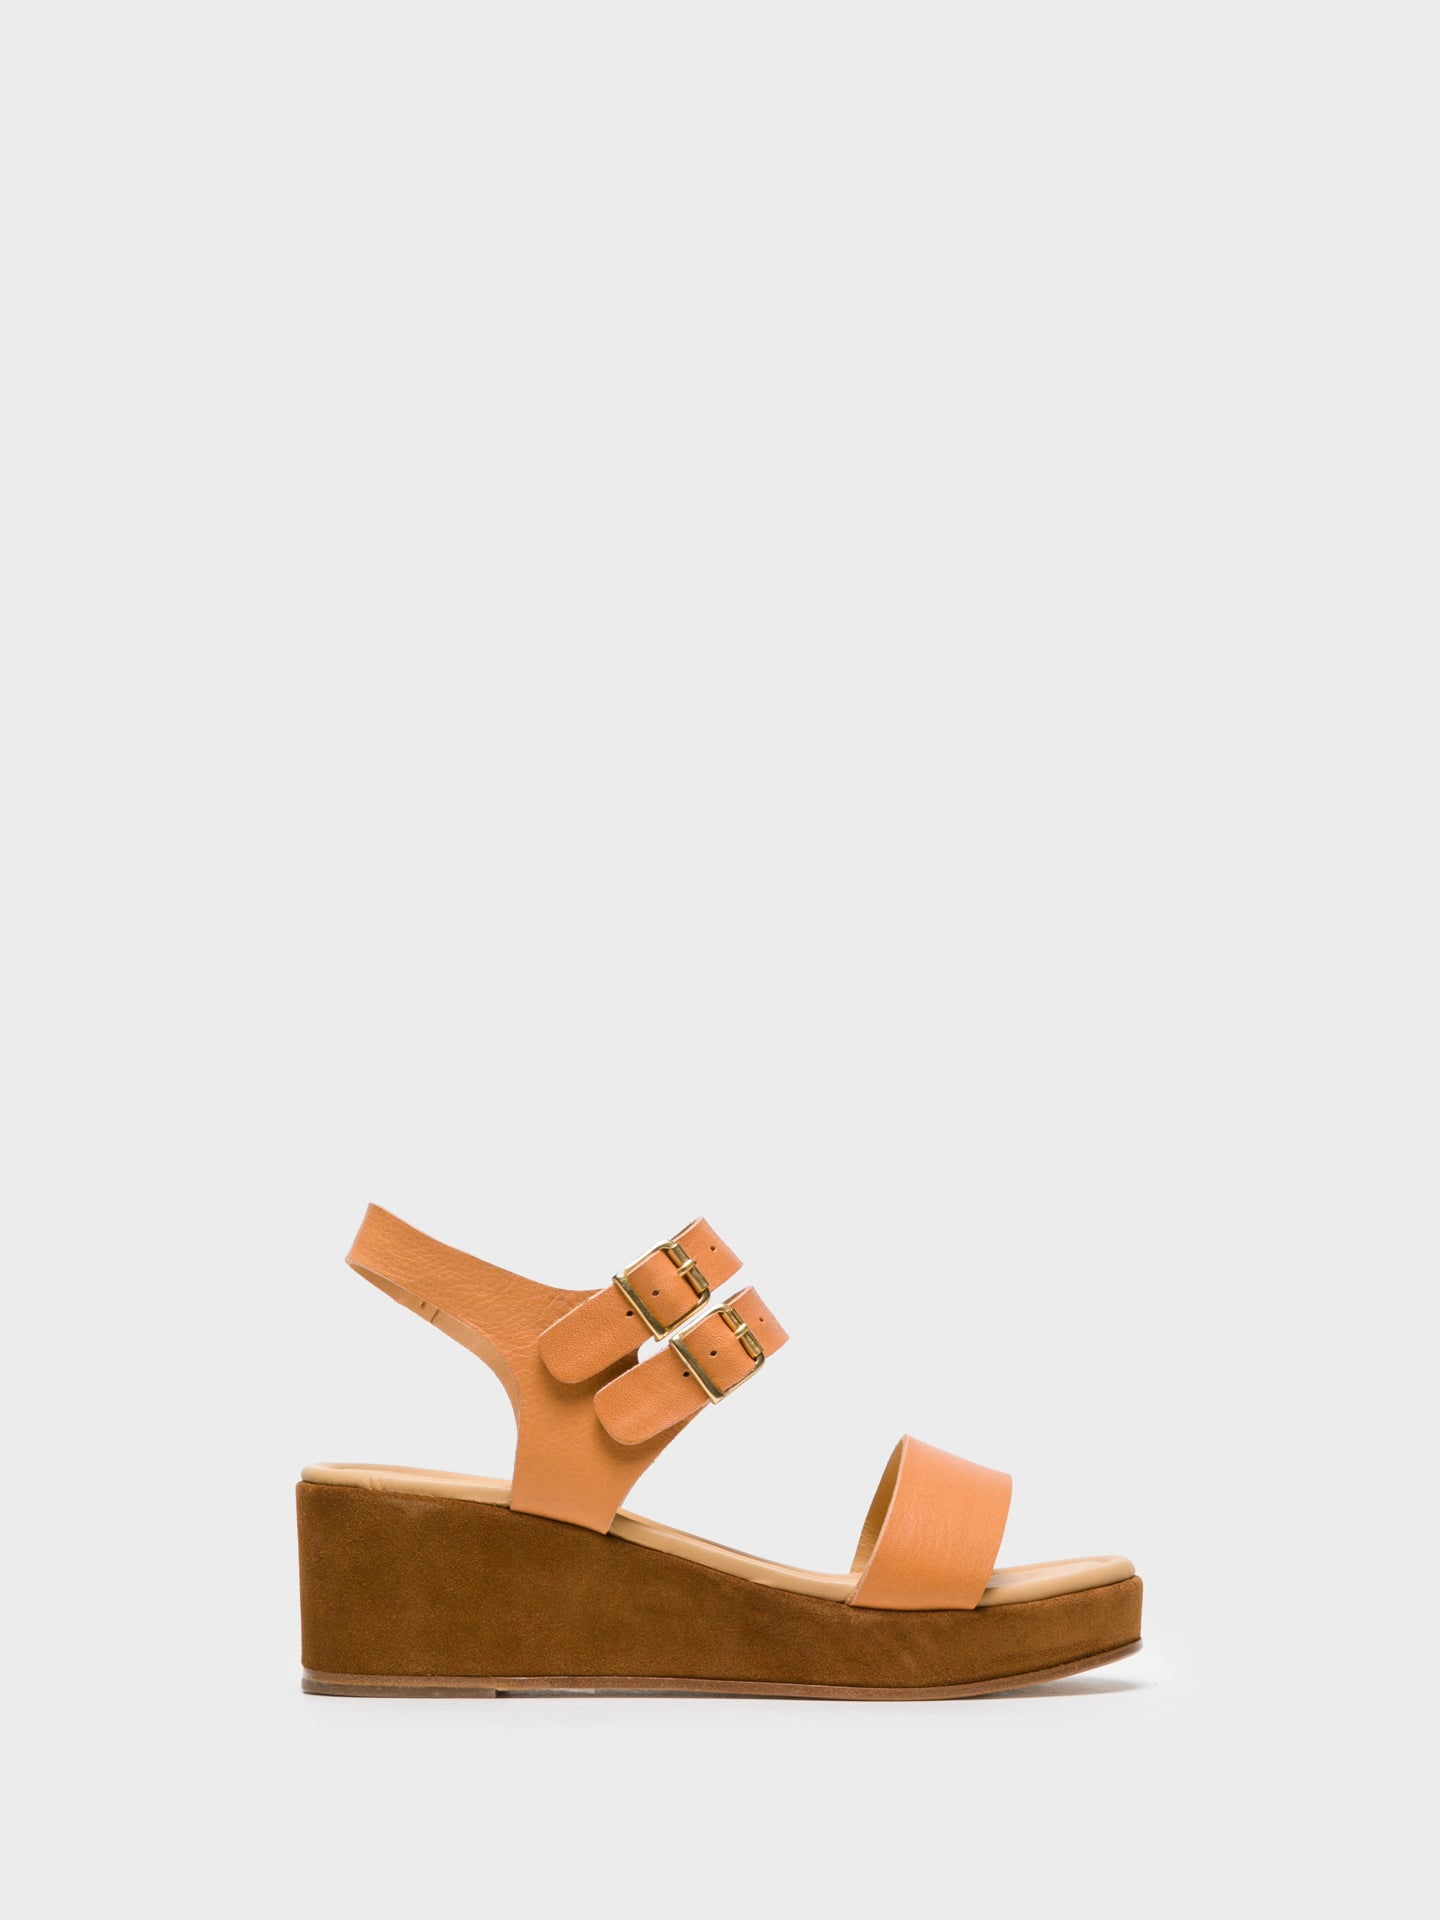 Only2me Brown Wedge Shoes